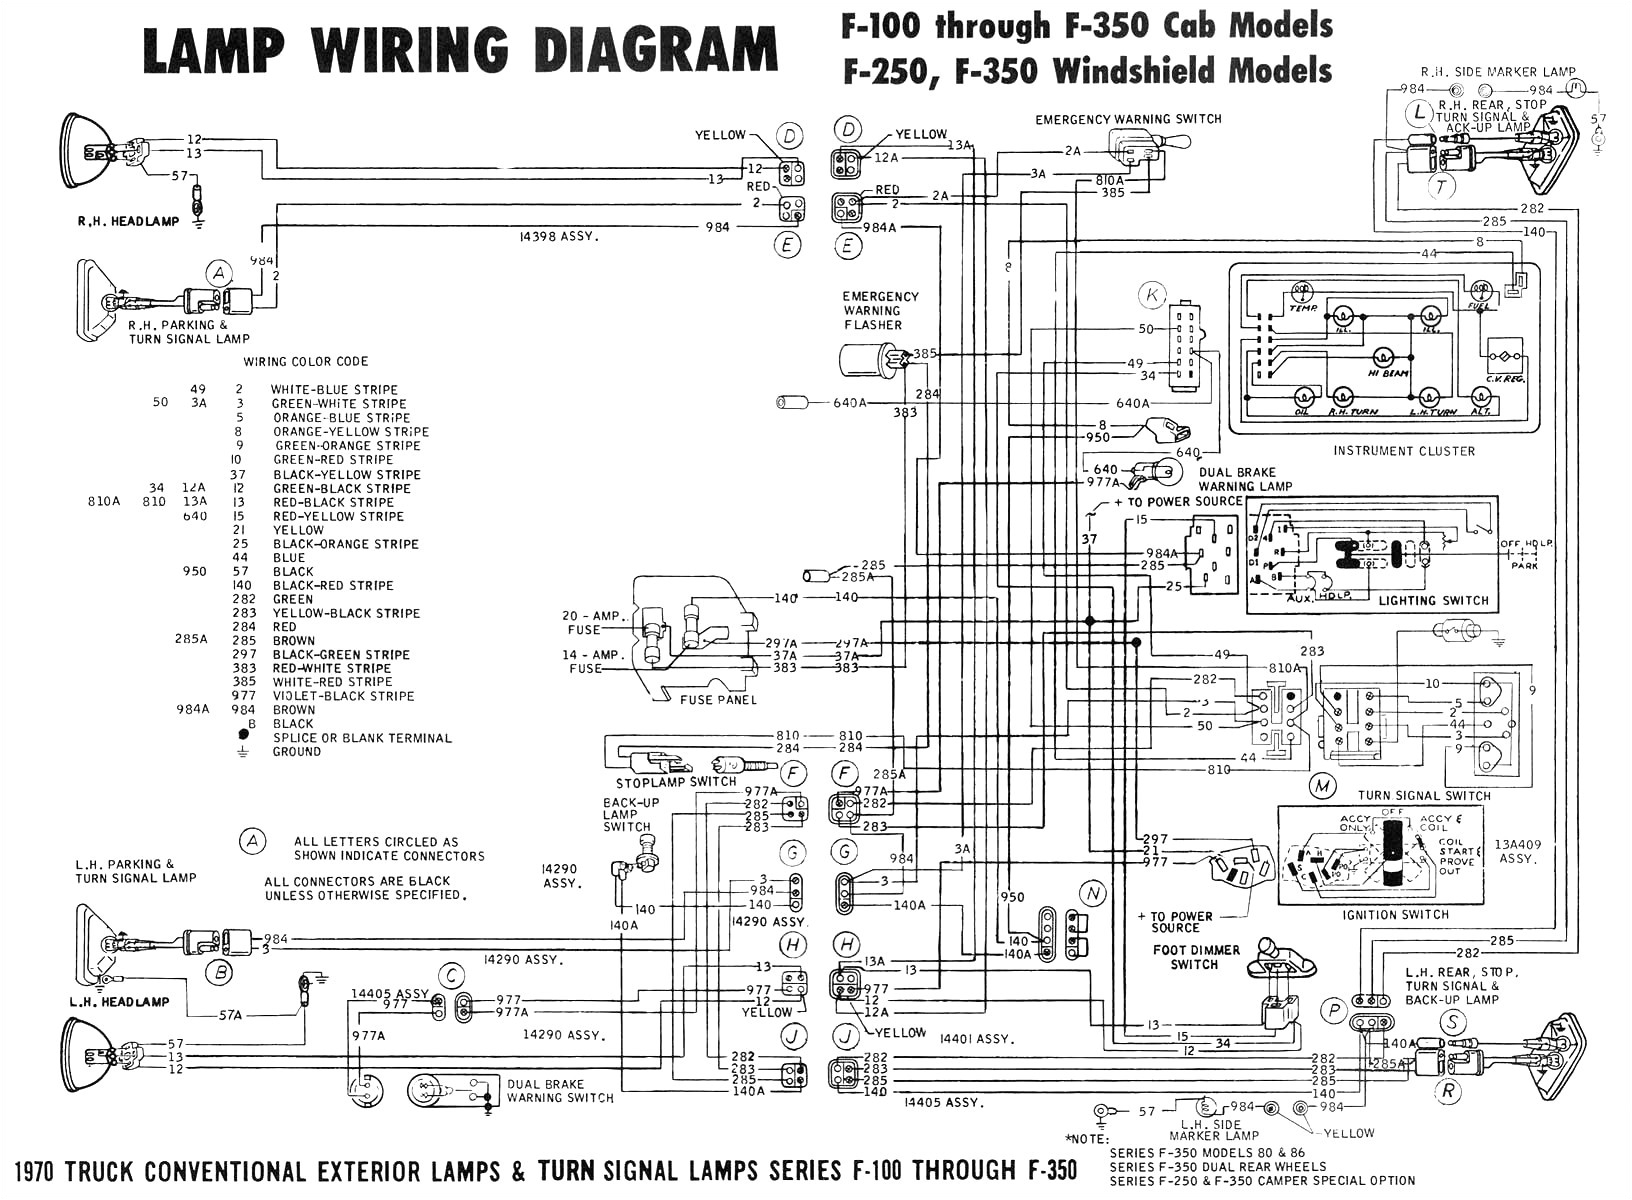 ford schematics free wiring diagram post ford mondeo wiring diagram free ford wiring diagrams free